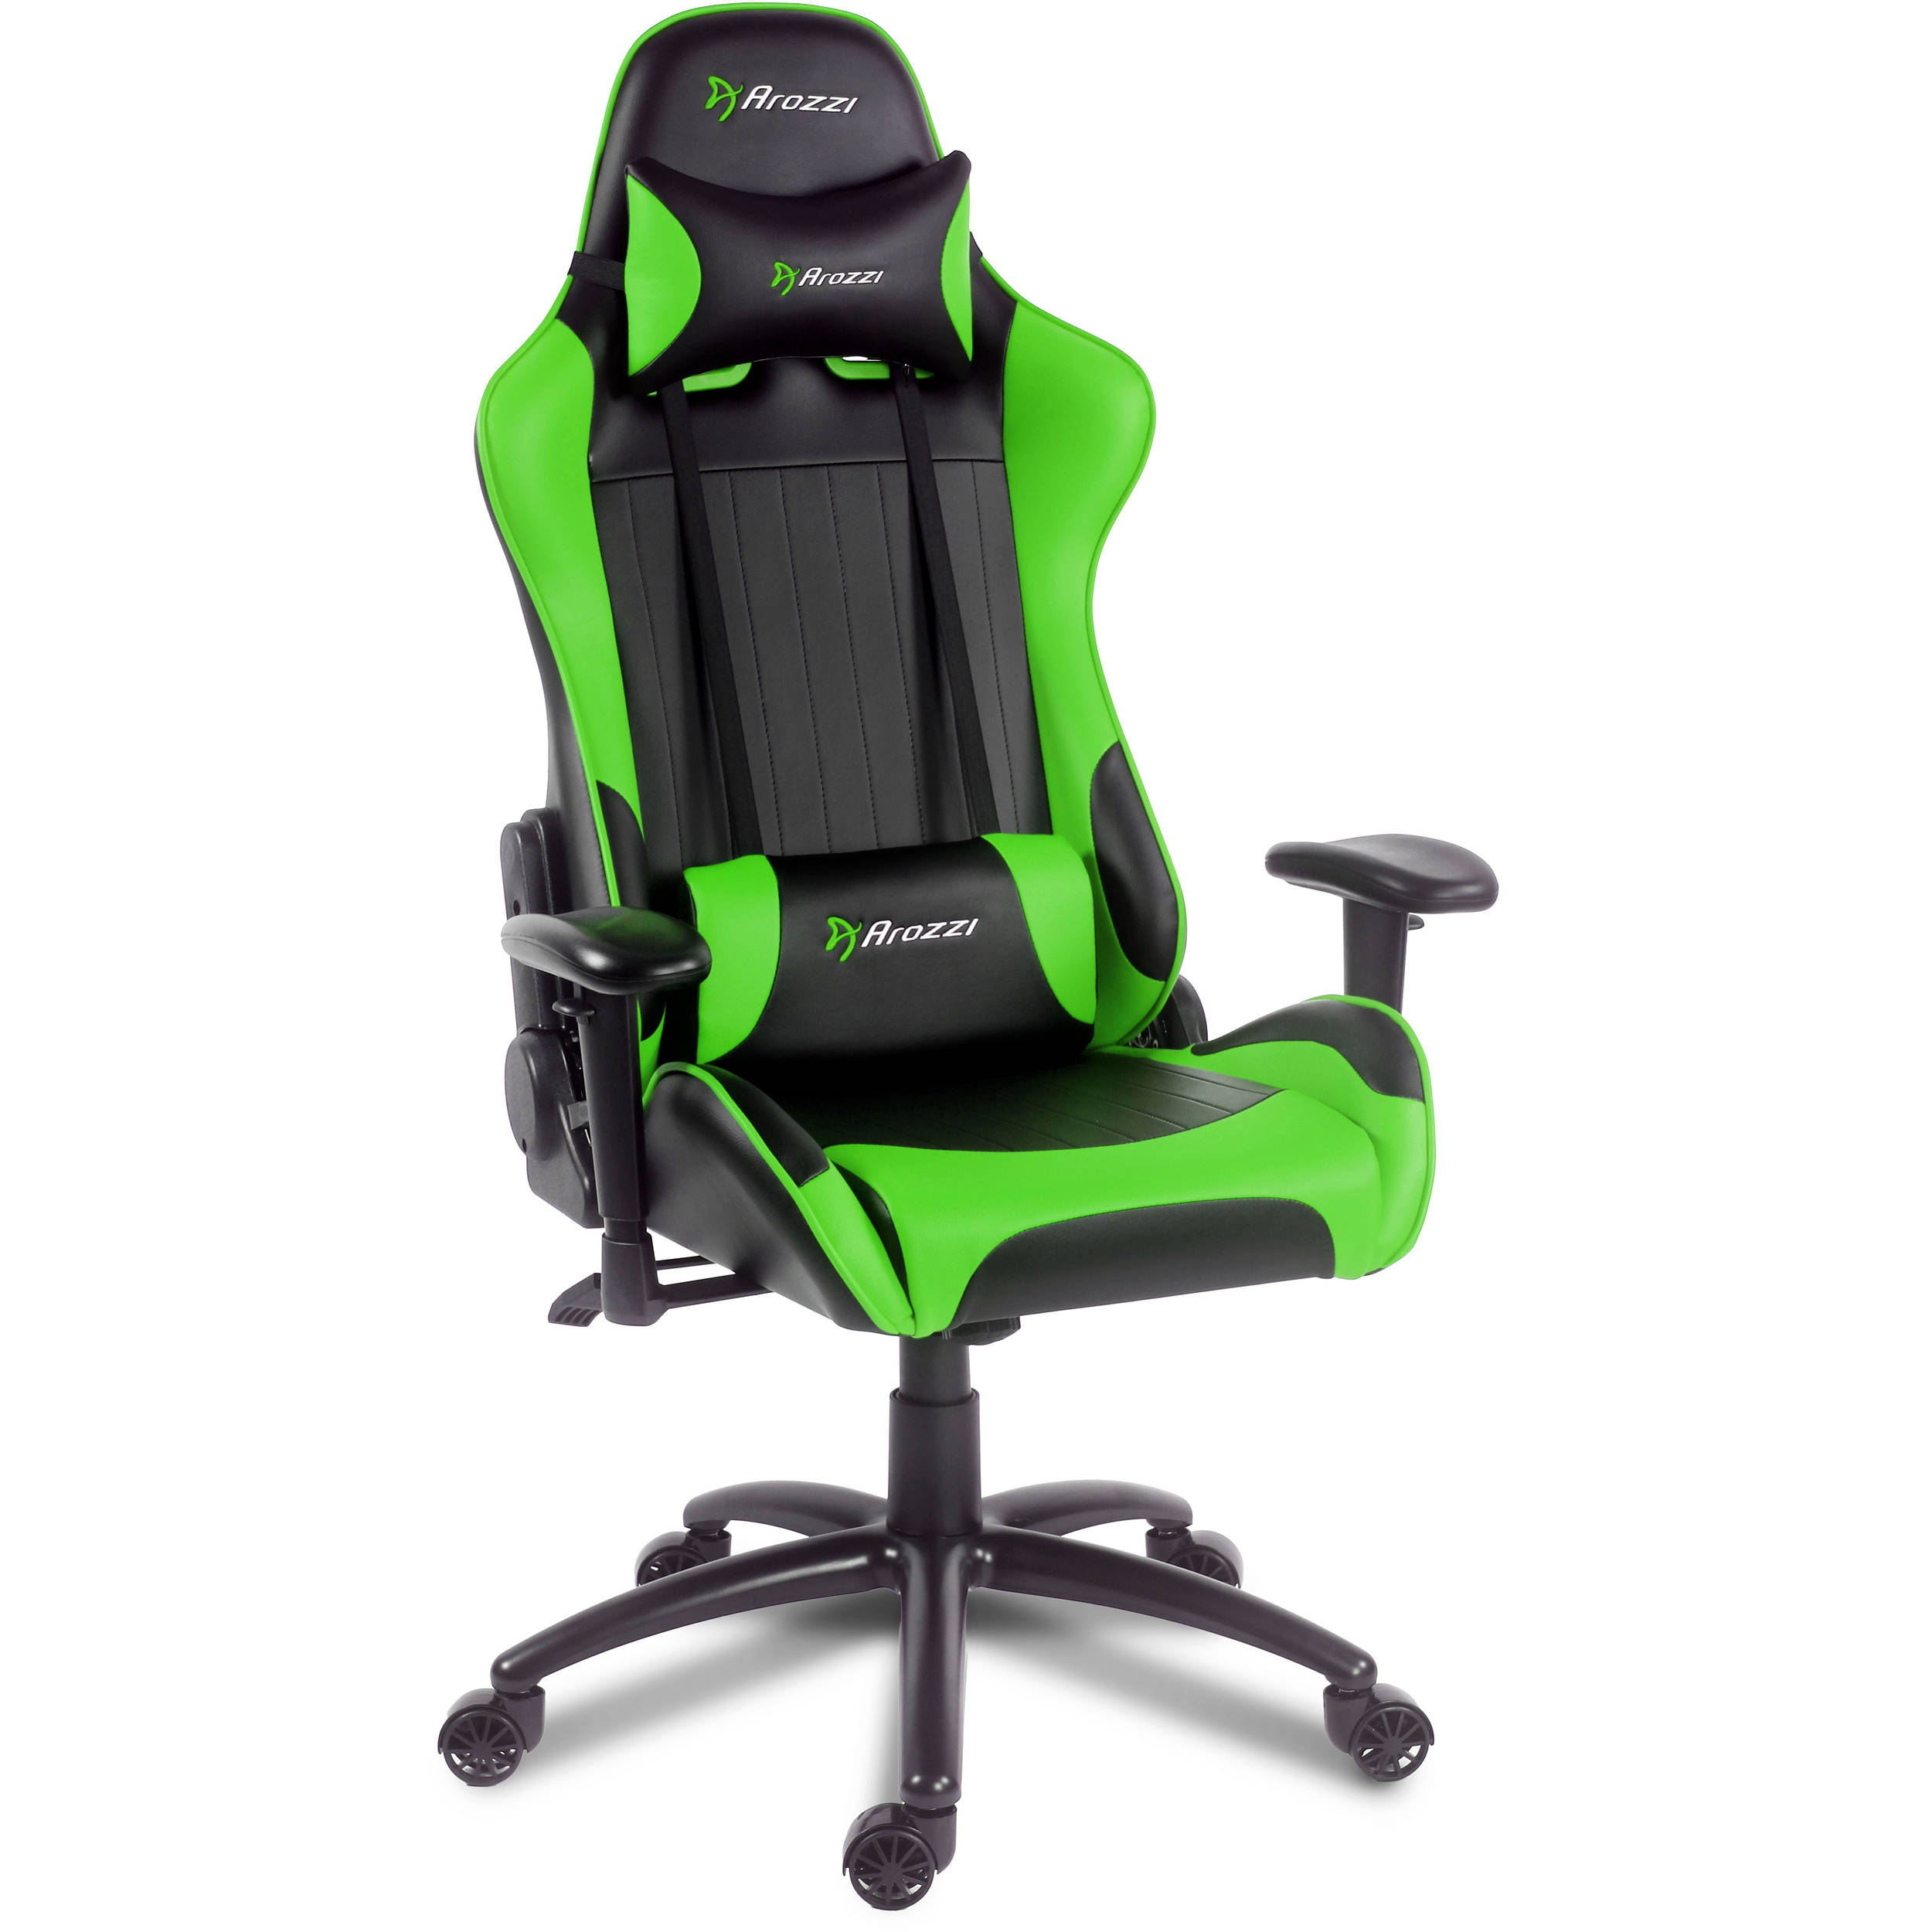 Arozzi verona gn verona gaming chair green besides 7501 additionally Forward Facing Child Car Seat further Finnspa Massagesessel Premion Schwarz additionally 4026. on chairs product